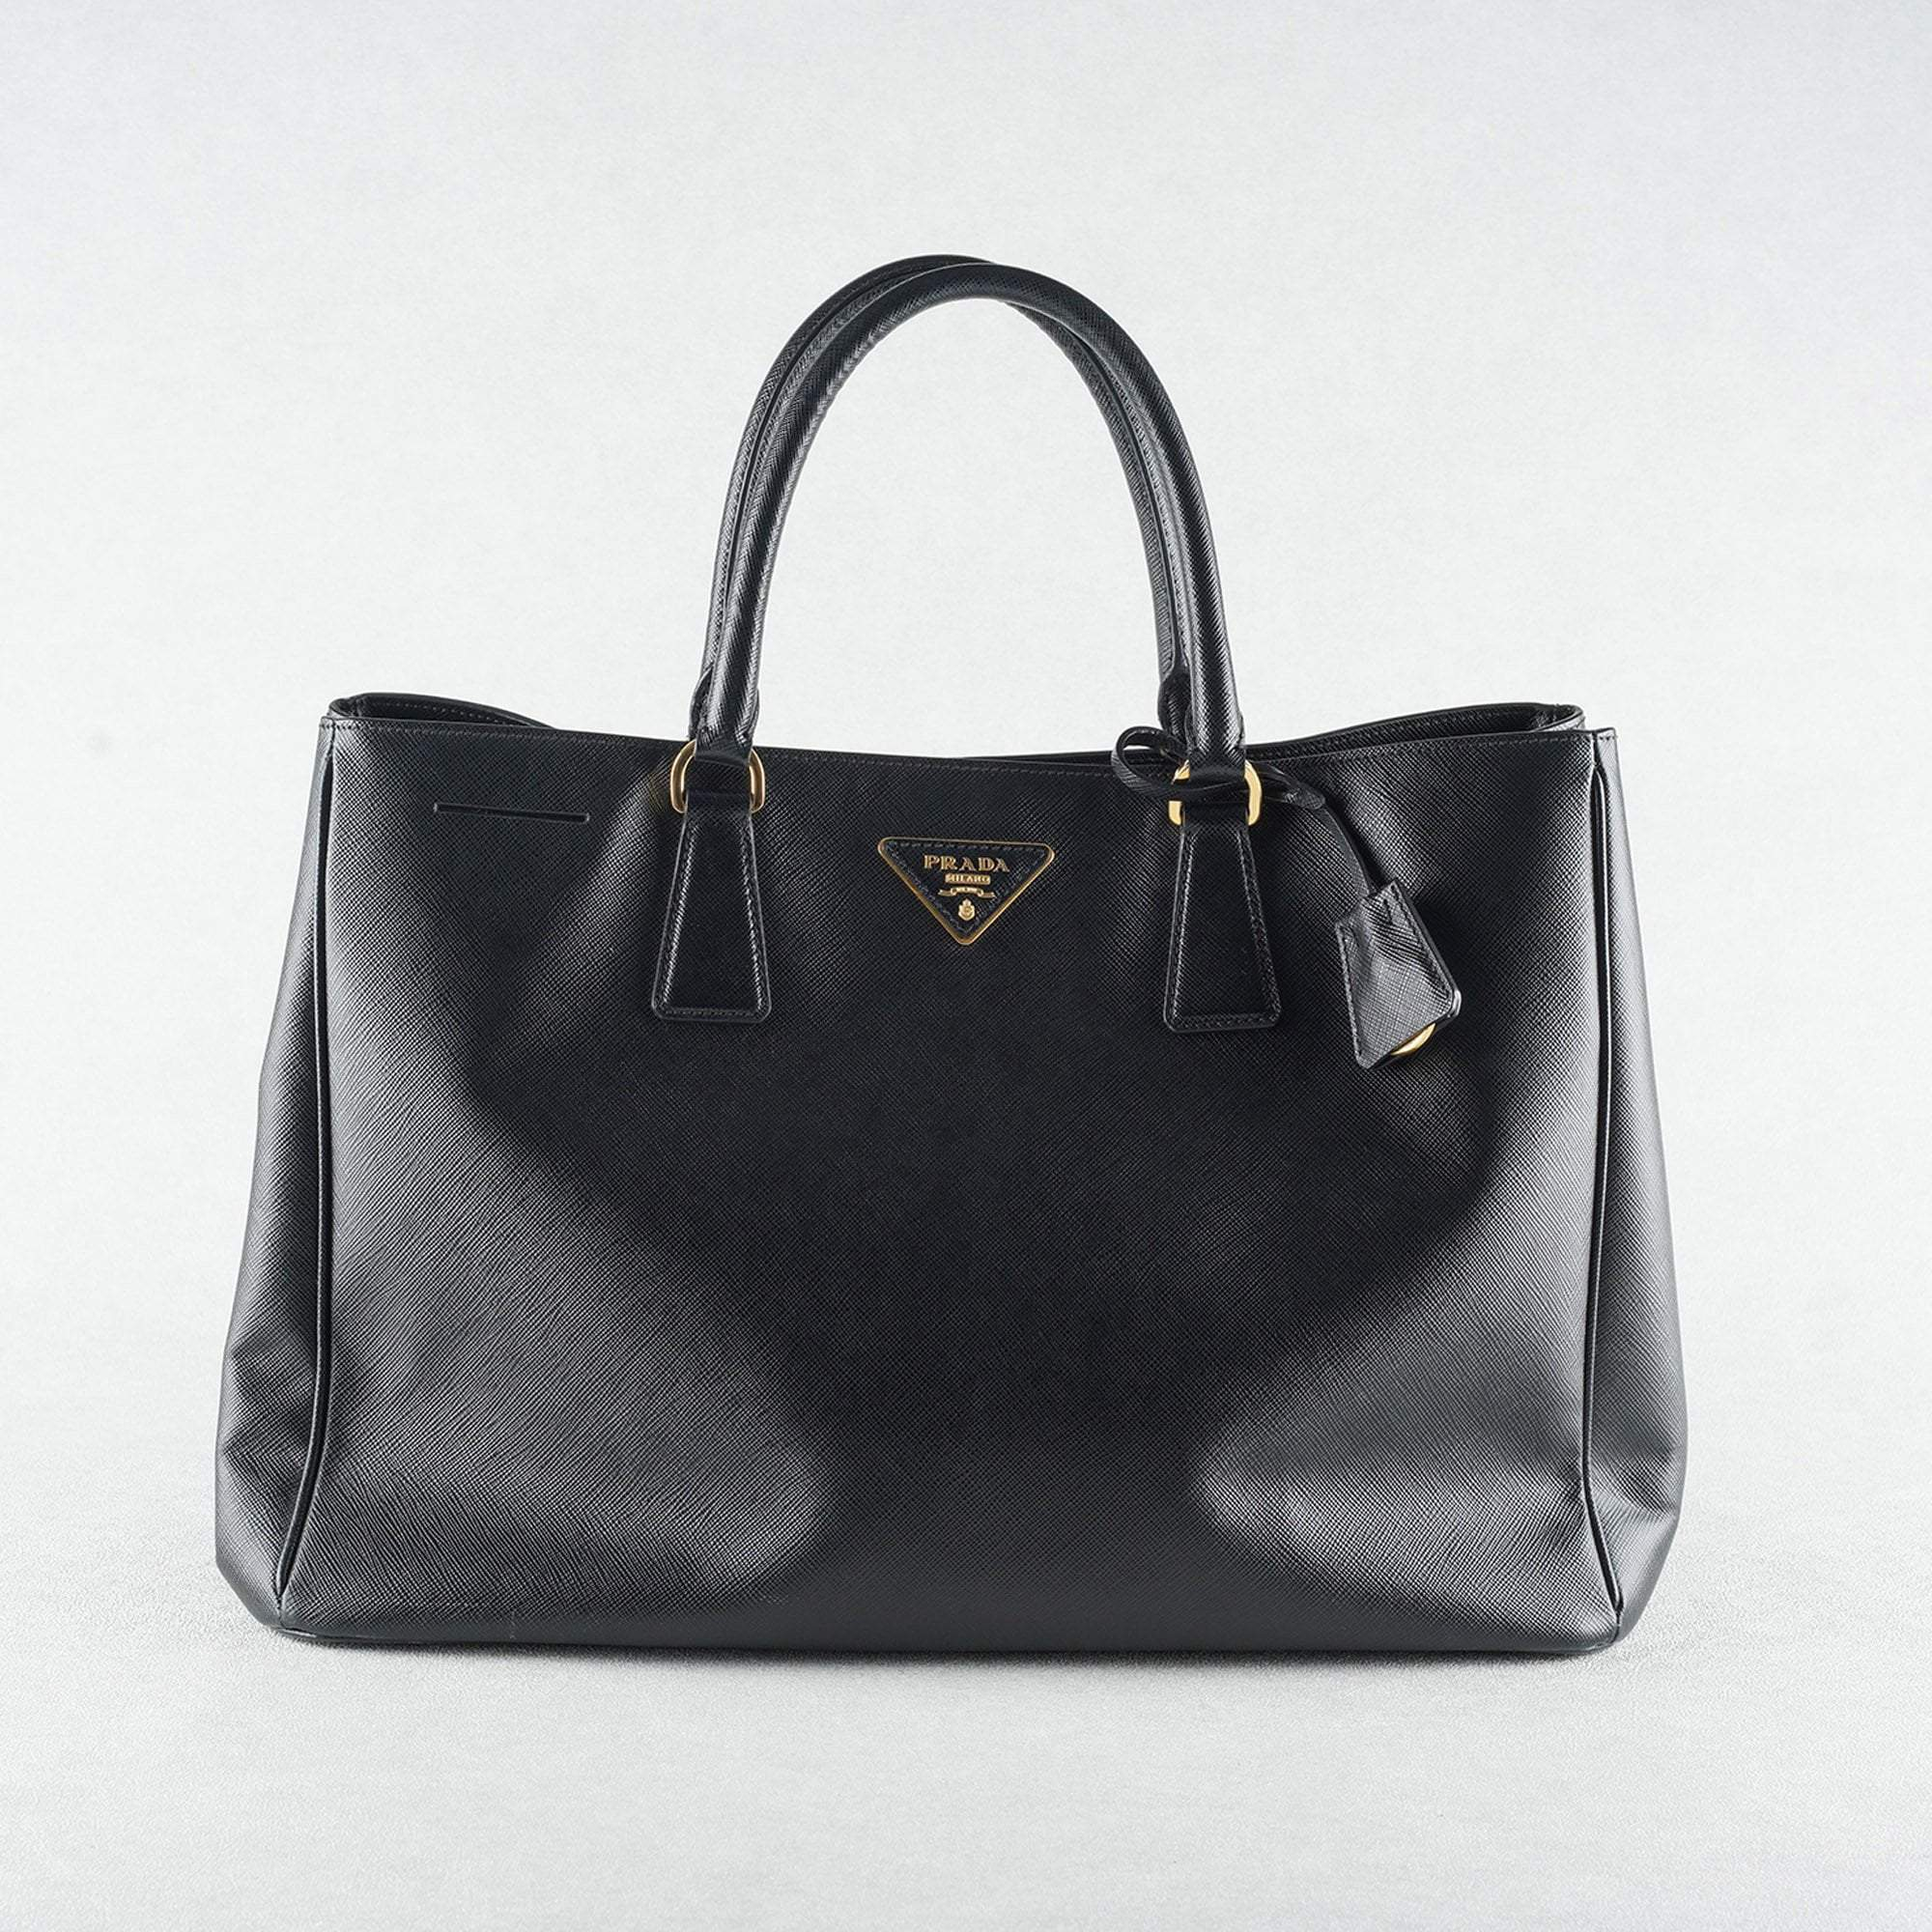 83584f45c2d4 Prada Black Saffiano Lux Leather Large Tote – Garderobe